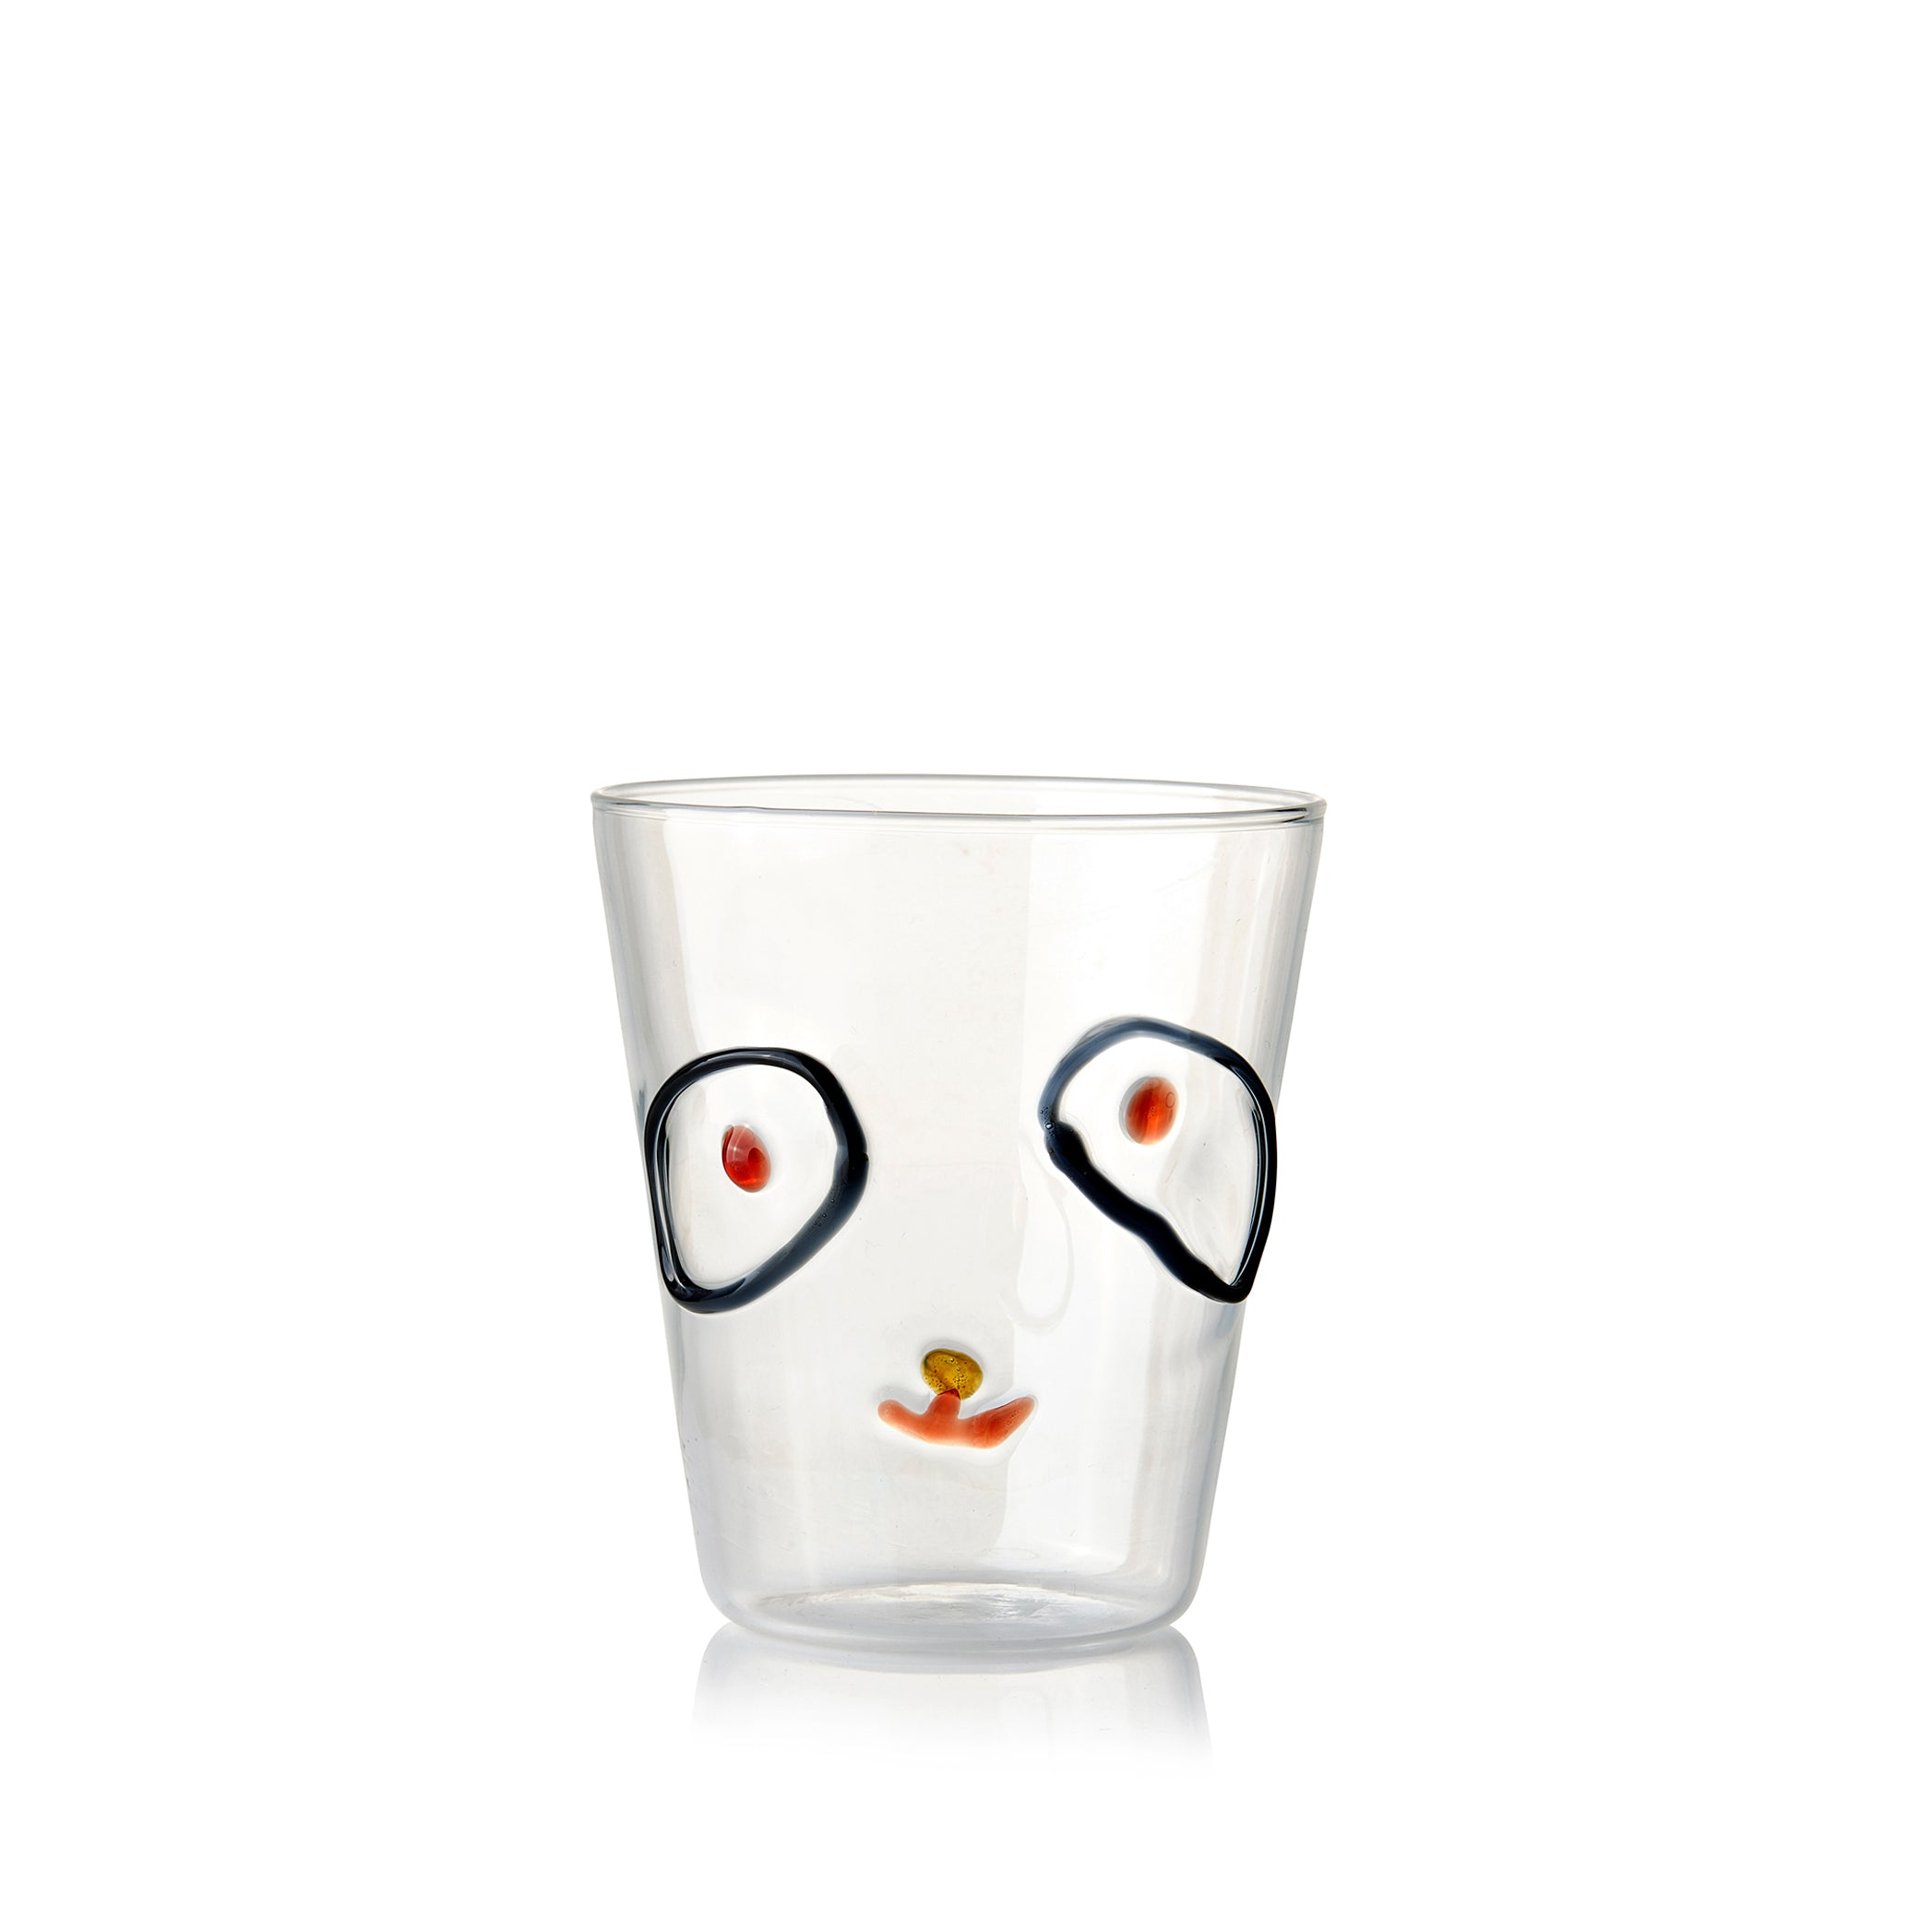 Handblown Glass Tumbler with Dog Head